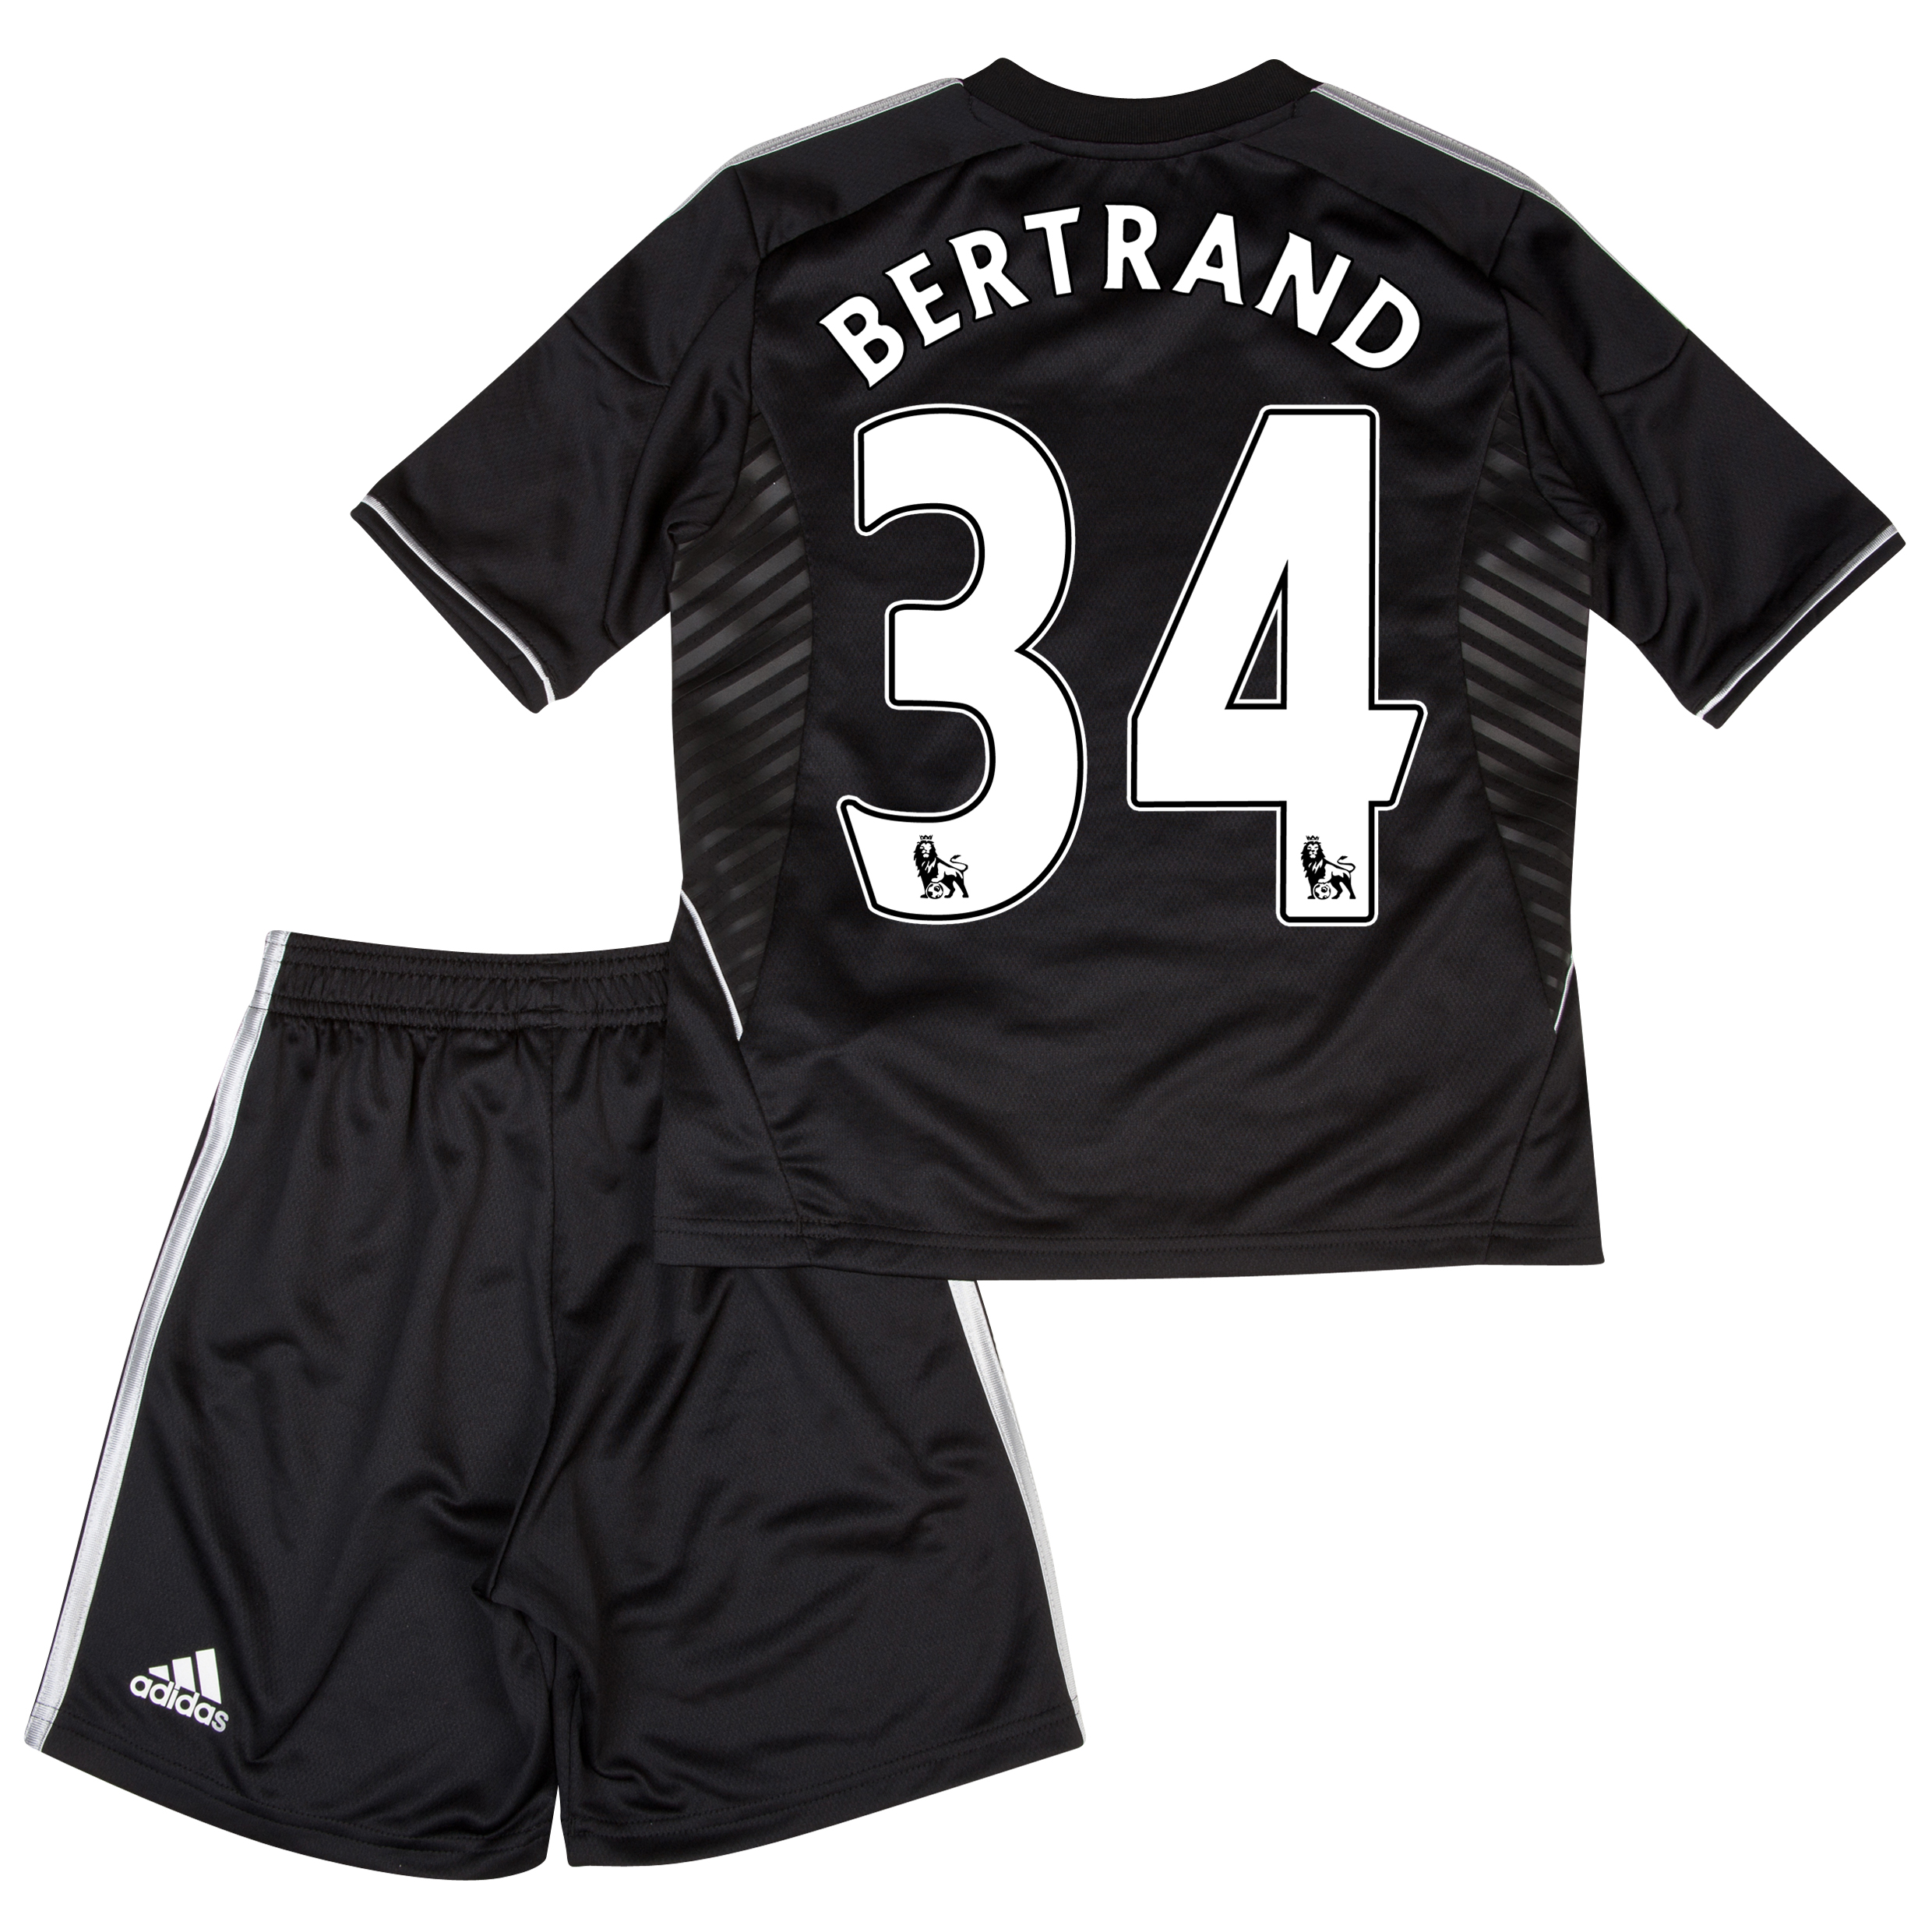 Chelsea Third Mini Kit 2013/14 with Bertrand 34 printing